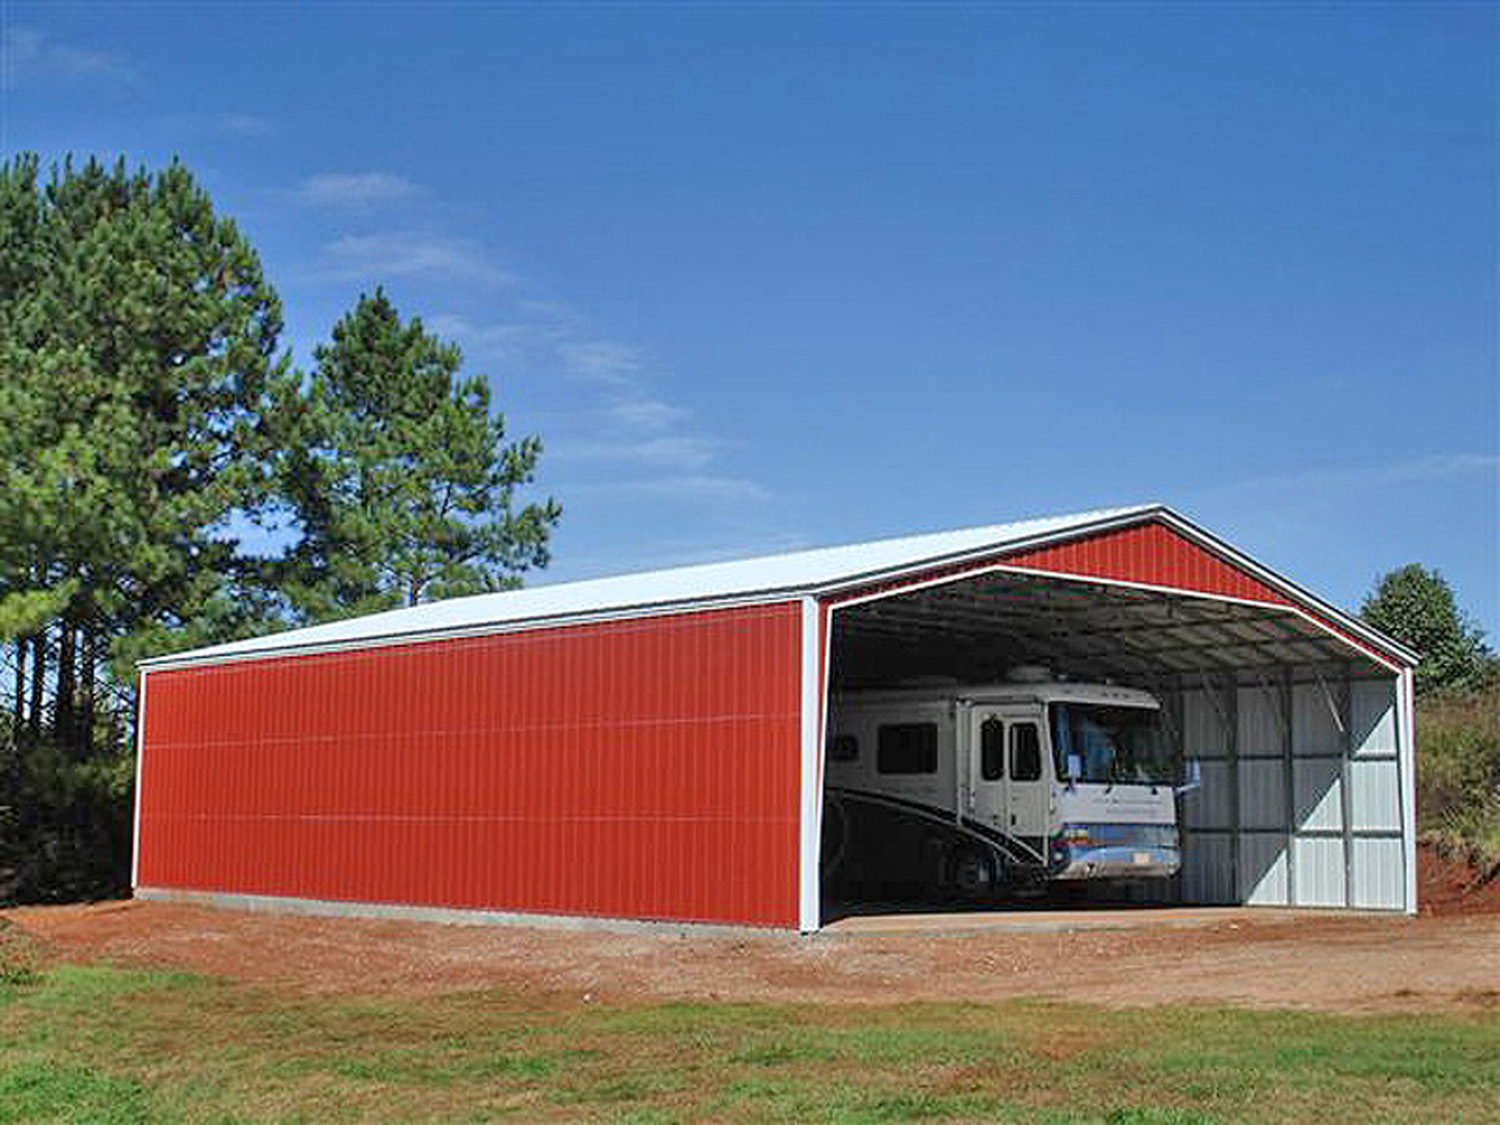 rv storage buildings metal rv shelters rv carports. Black Bedroom Furniture Sets. Home Design Ideas